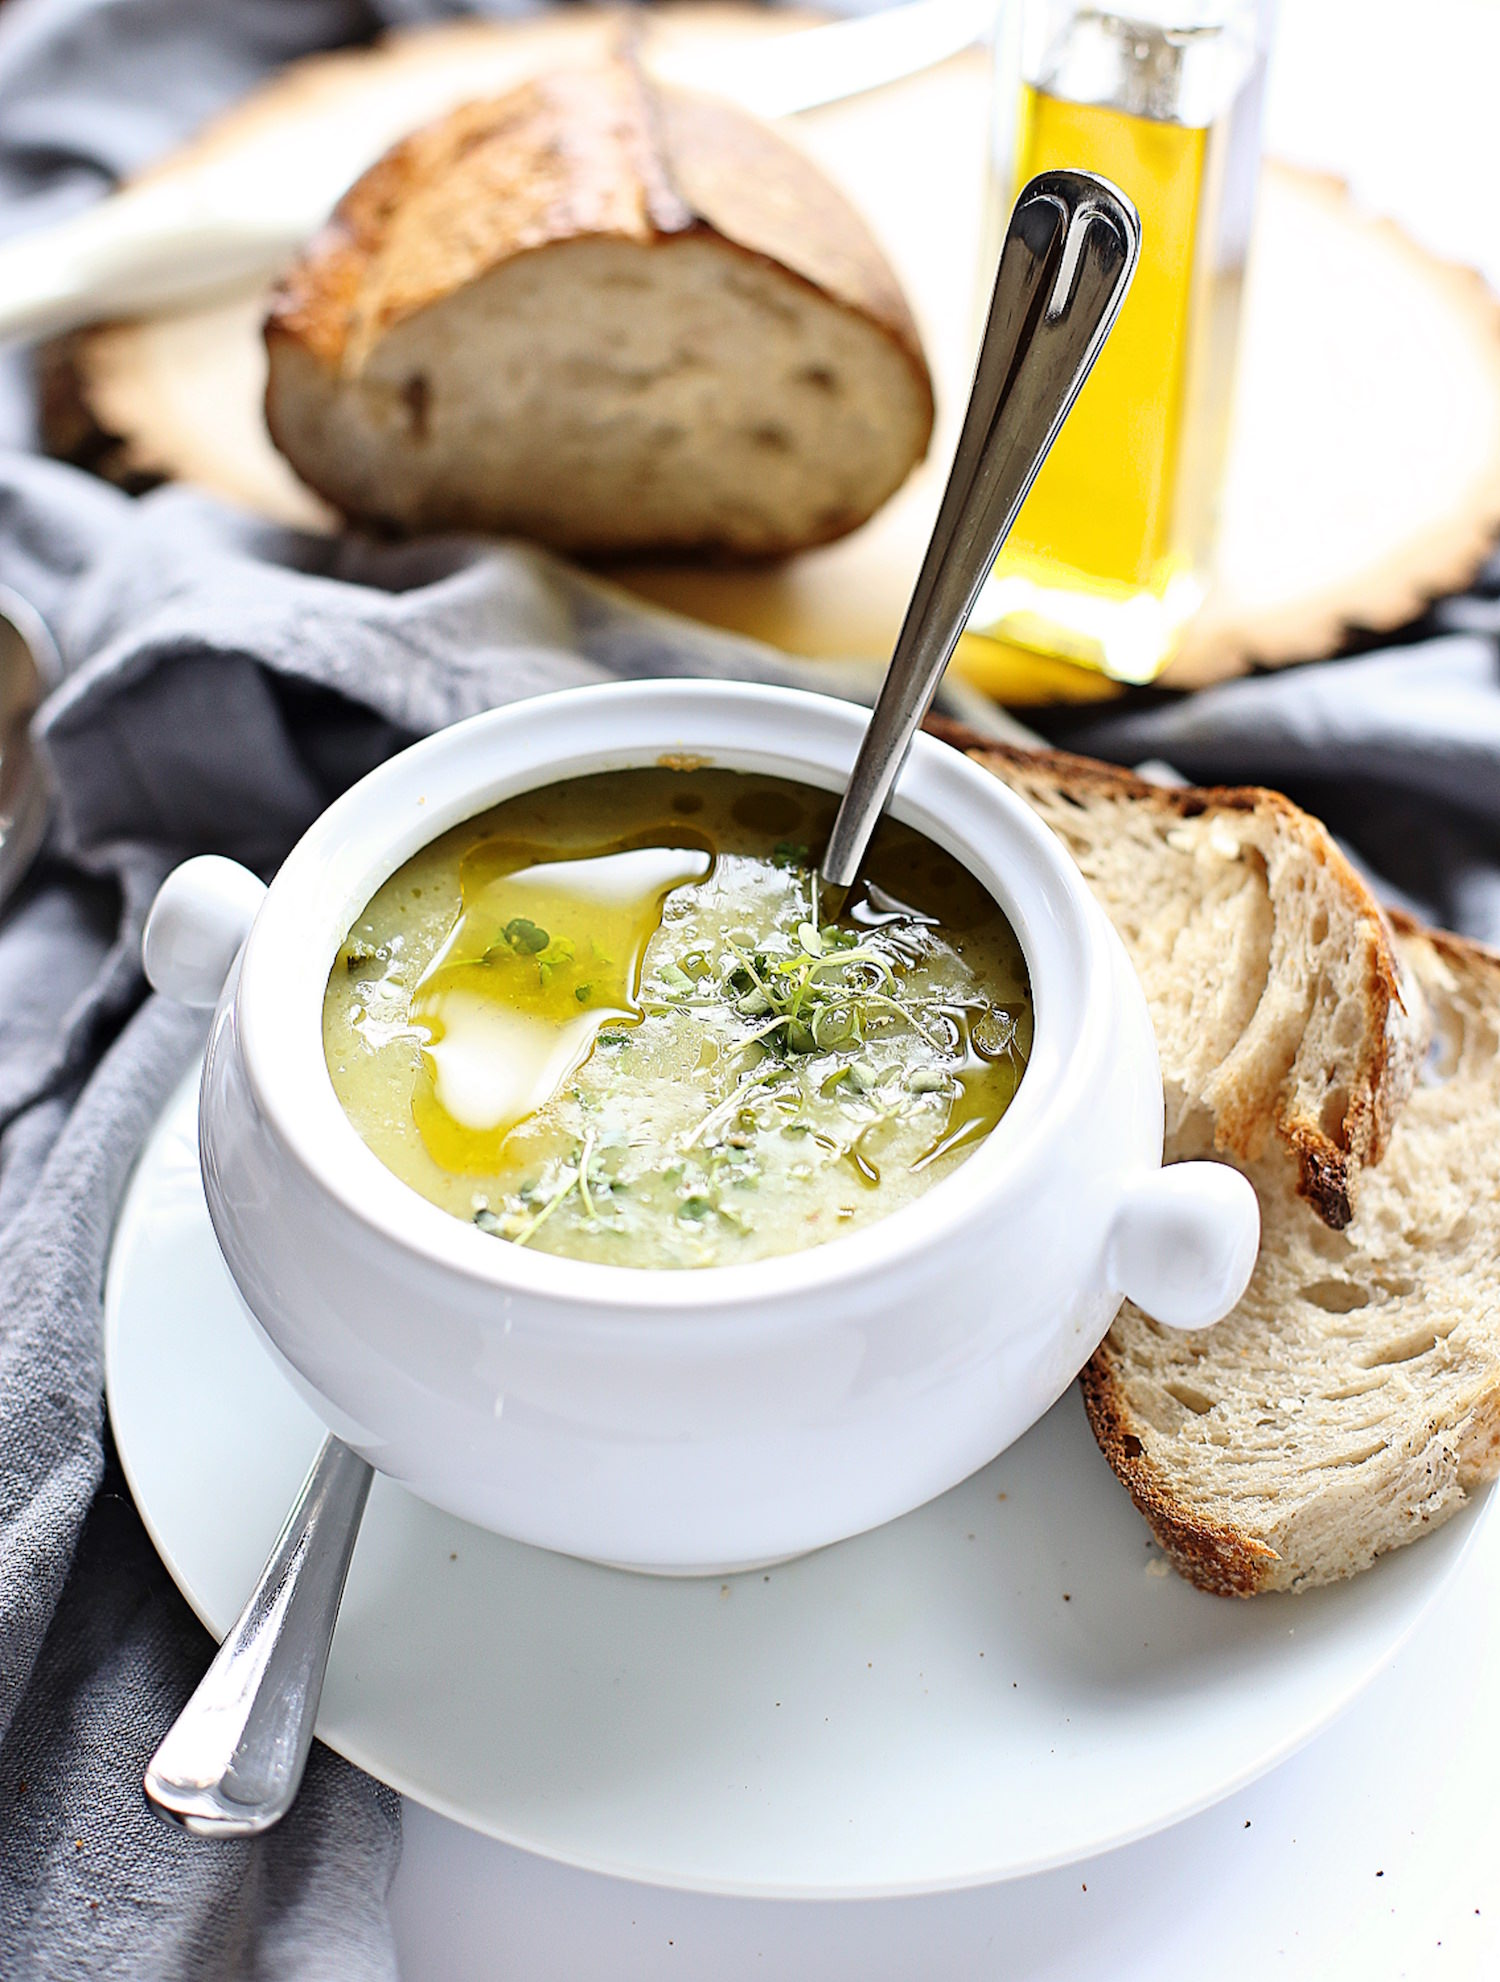 Quick and Easy Zucchini Soup: zucchinis, onions, and a few other ingredients come together to form this creamy, wholesome, delicious soup.   TrufflesandTrends.com